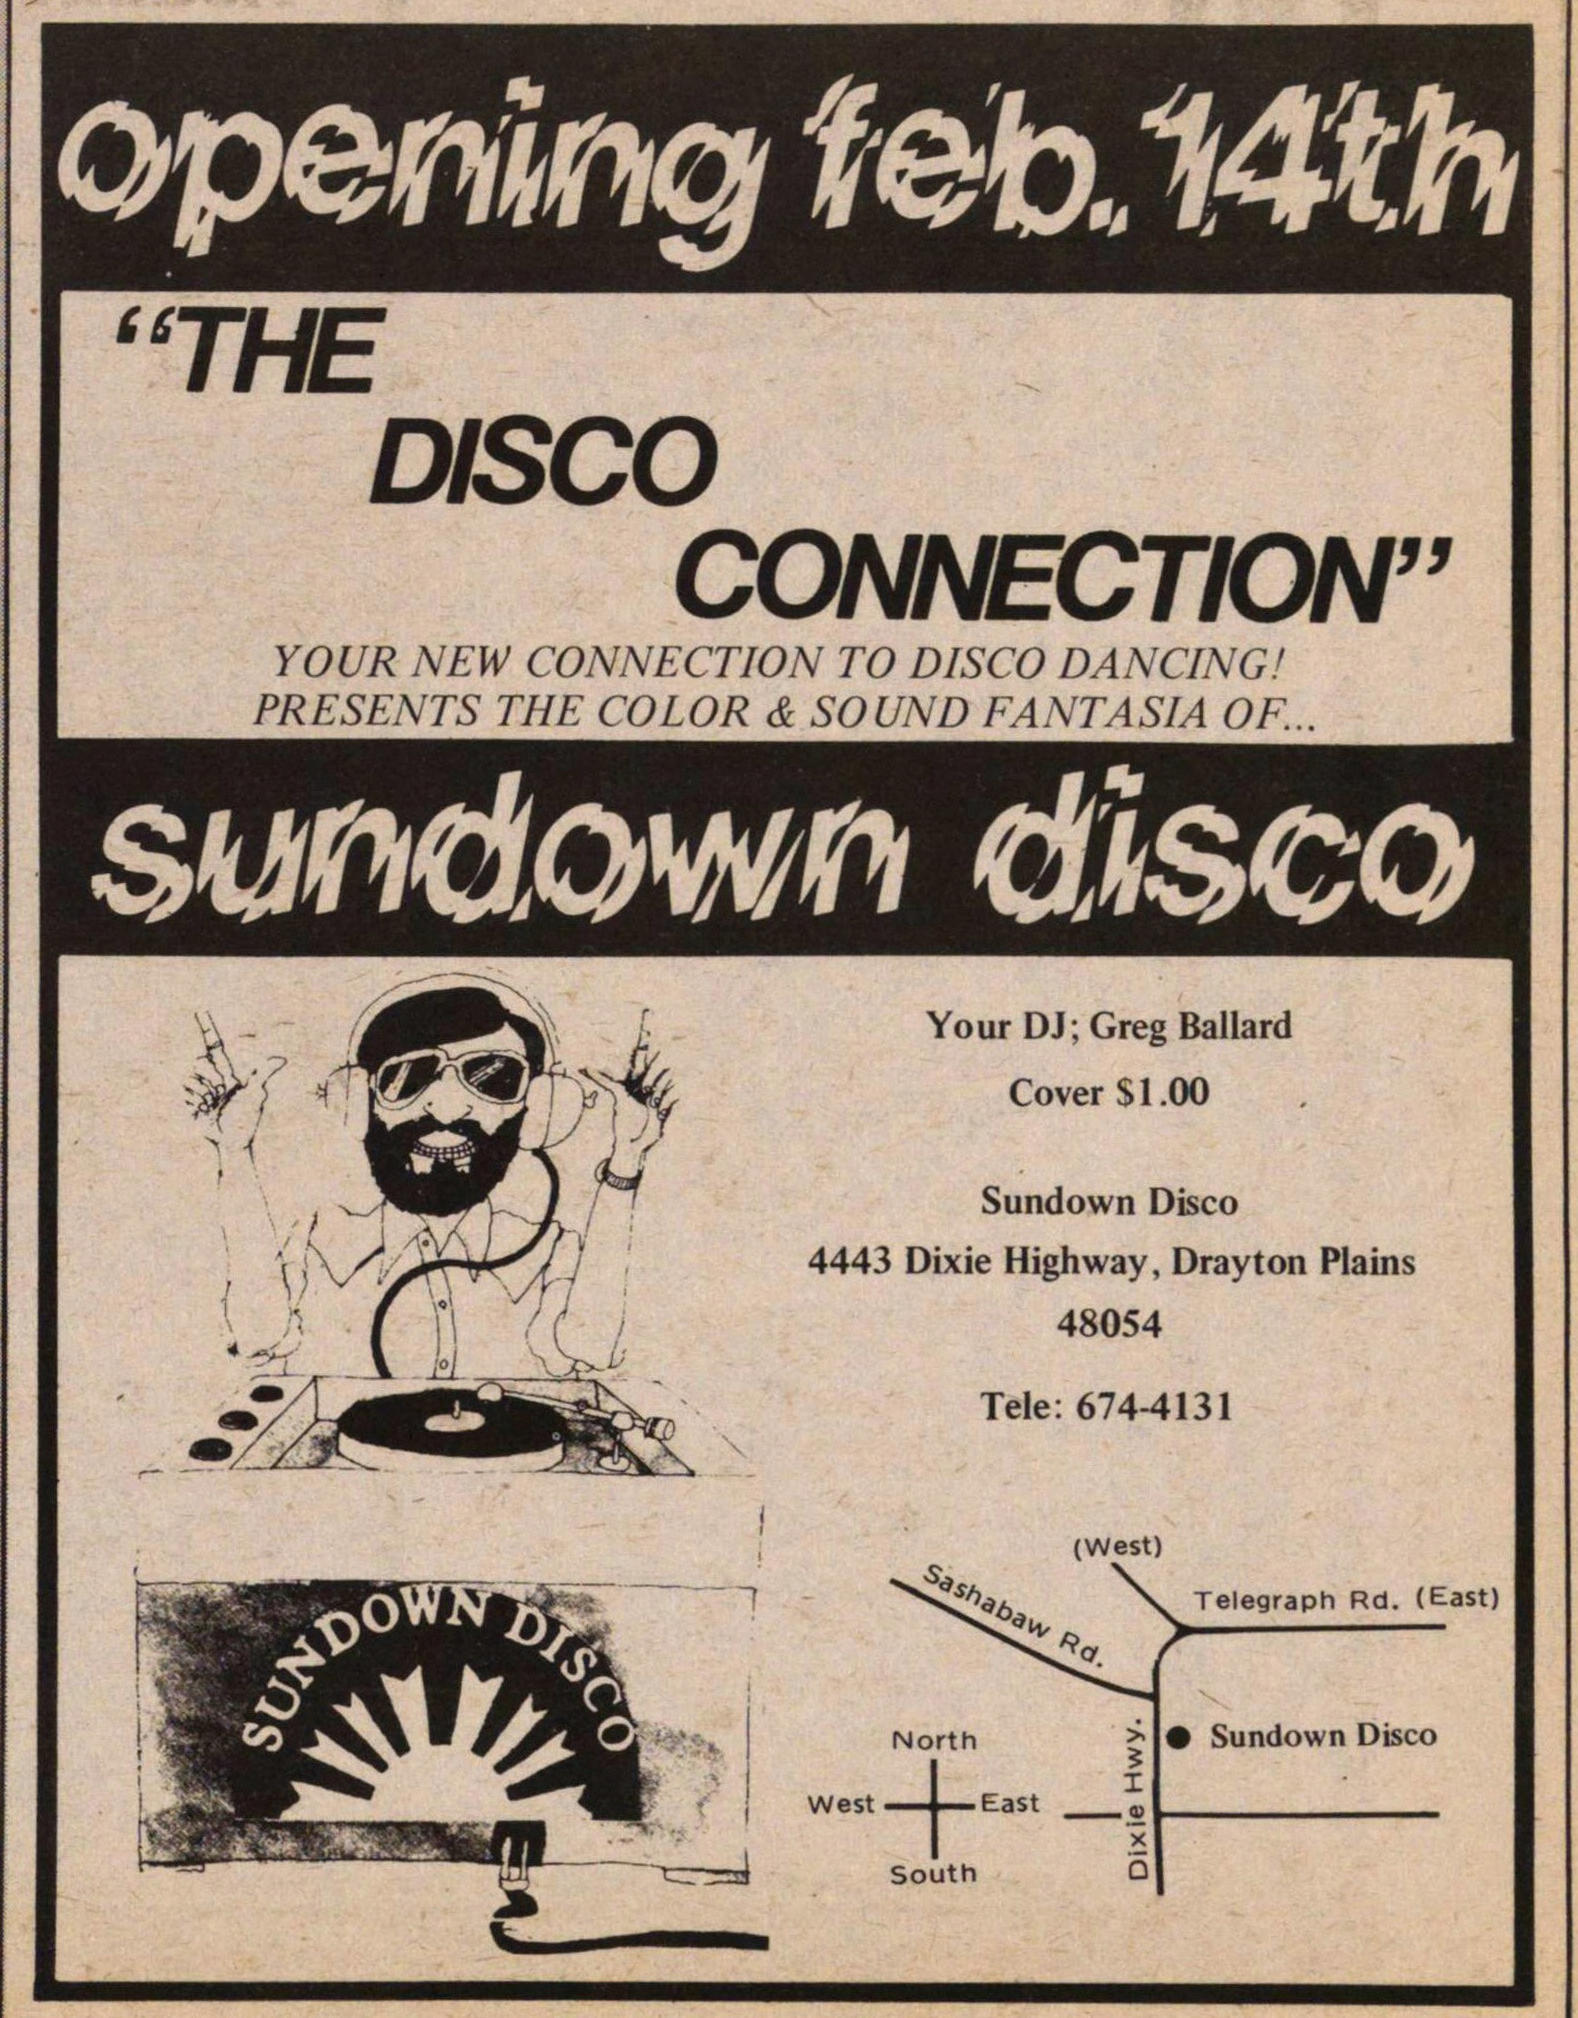 Sundown Disco image